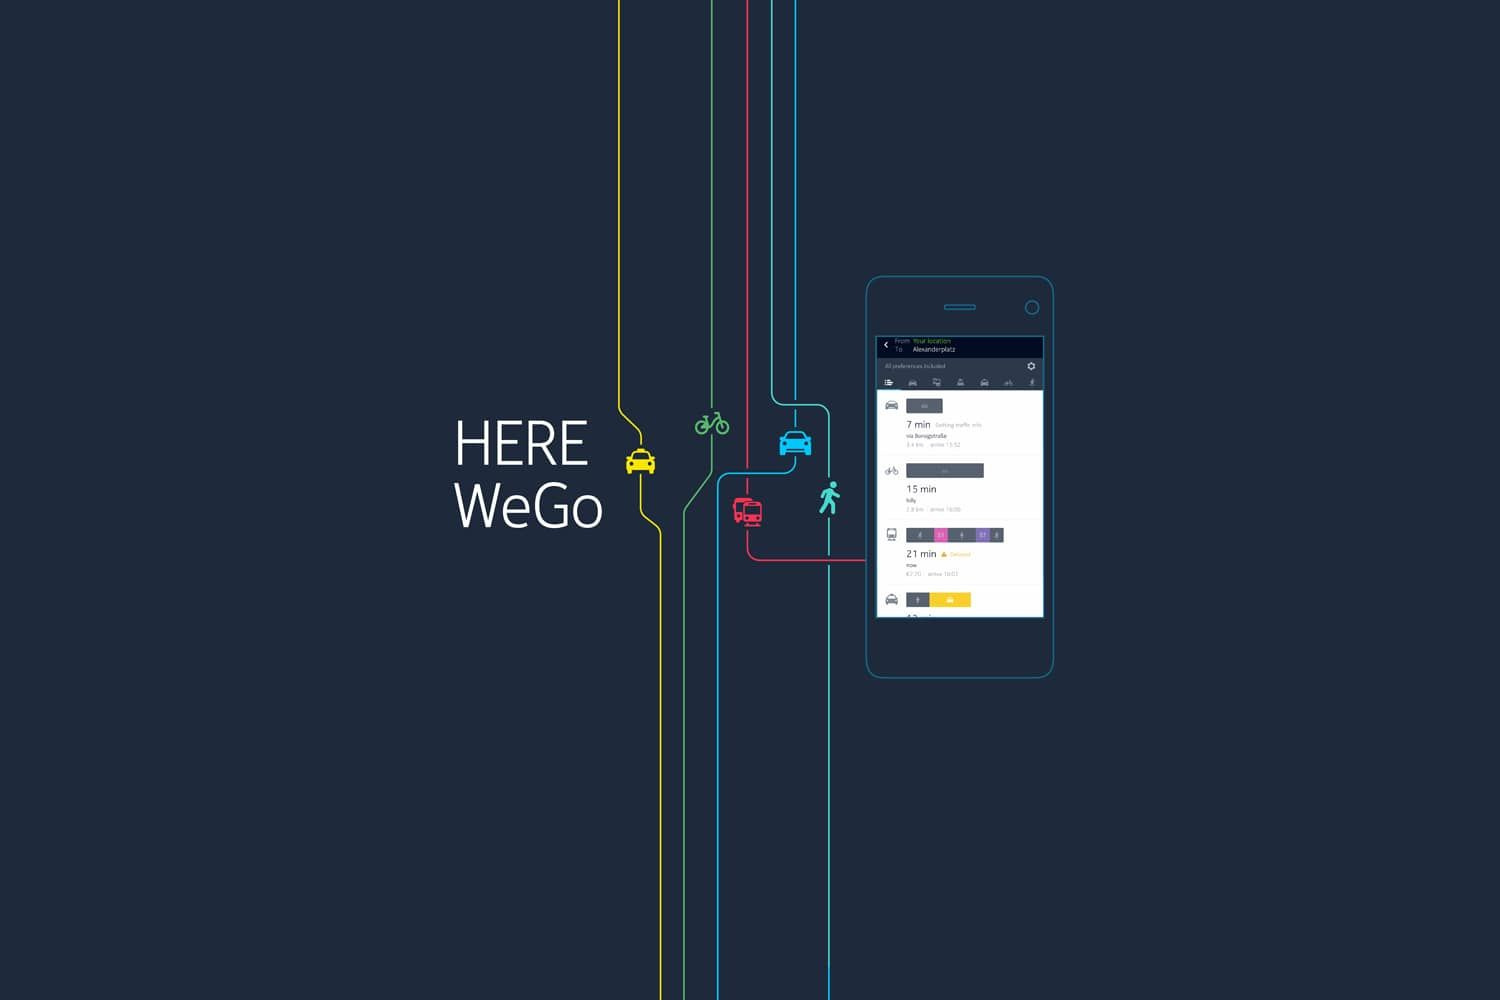 Here WeGo updated new navigation app for Gear S3 is live now